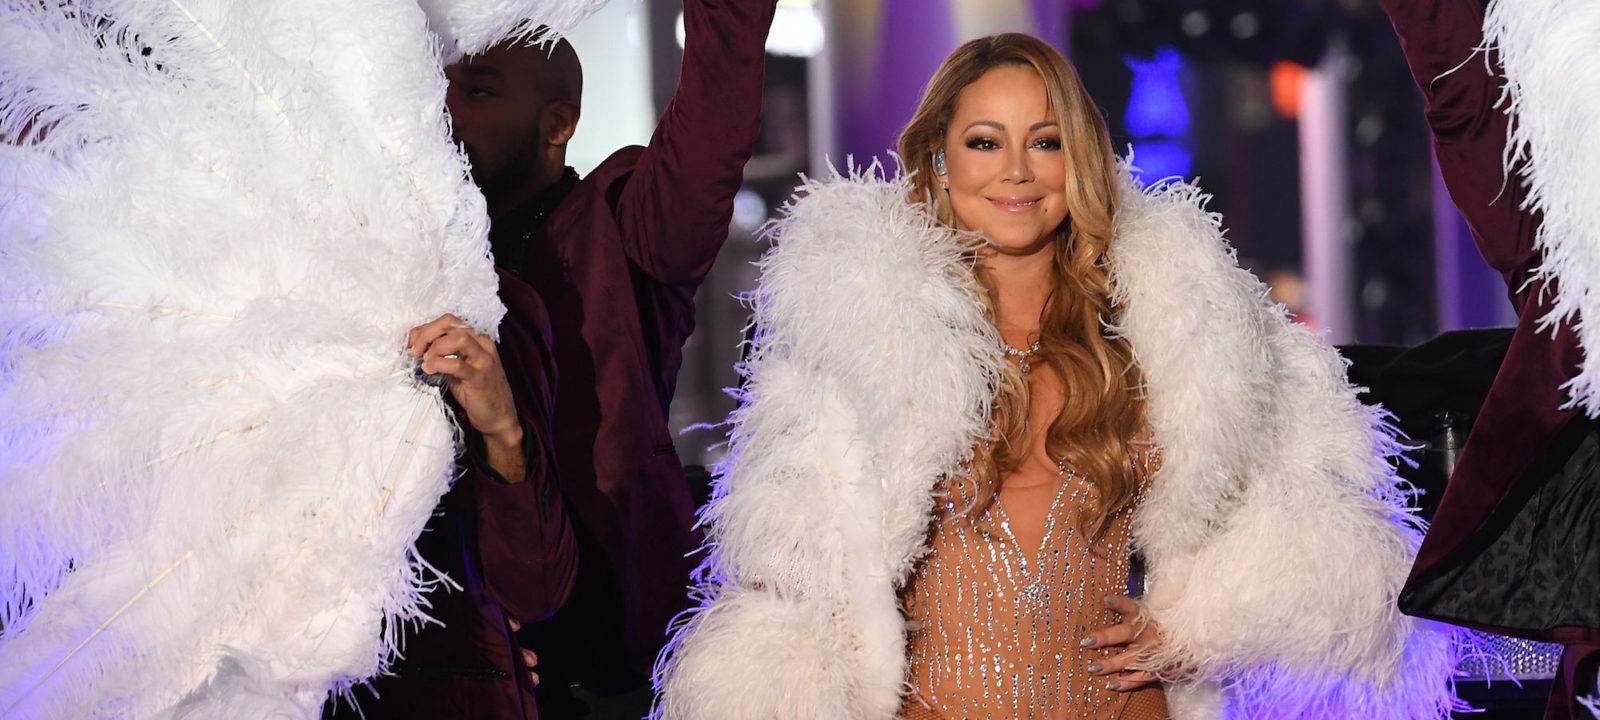 Mariah Carey performs during New Year's Eve celebrations in Times Square on December 31, 2016 in New York.